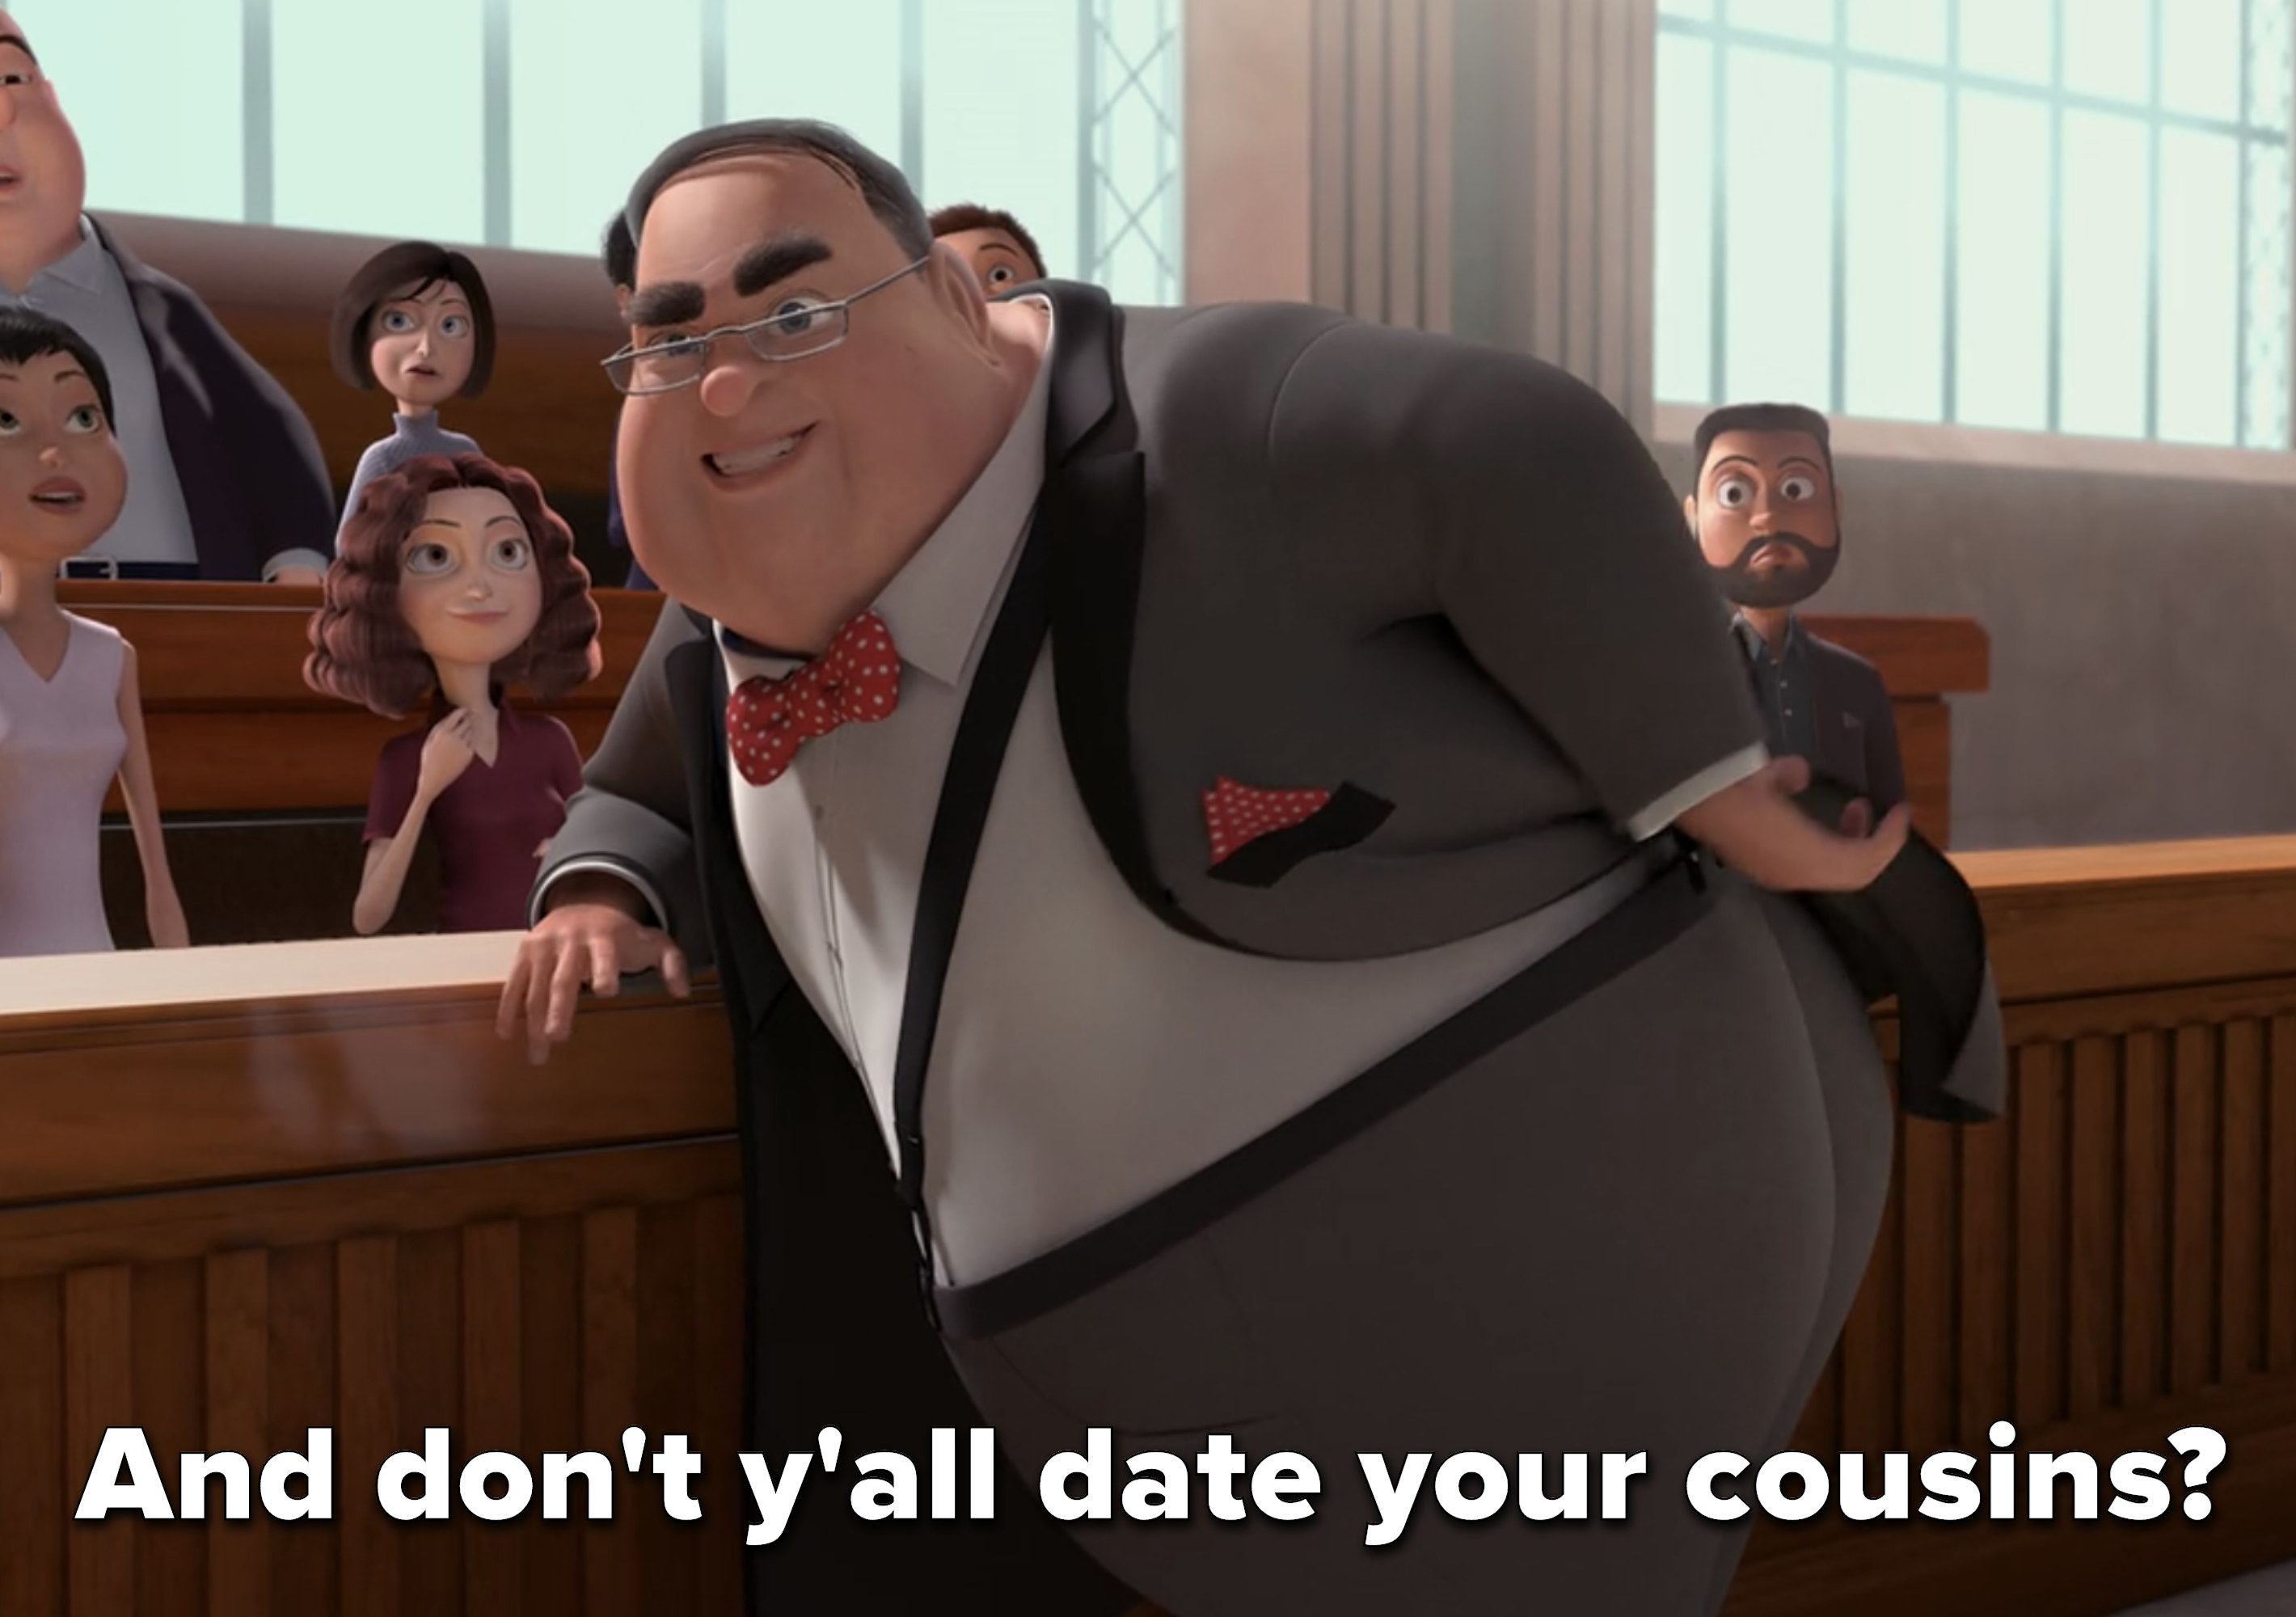 """the lawyer says """"don't y'all date your cousins?"""""""